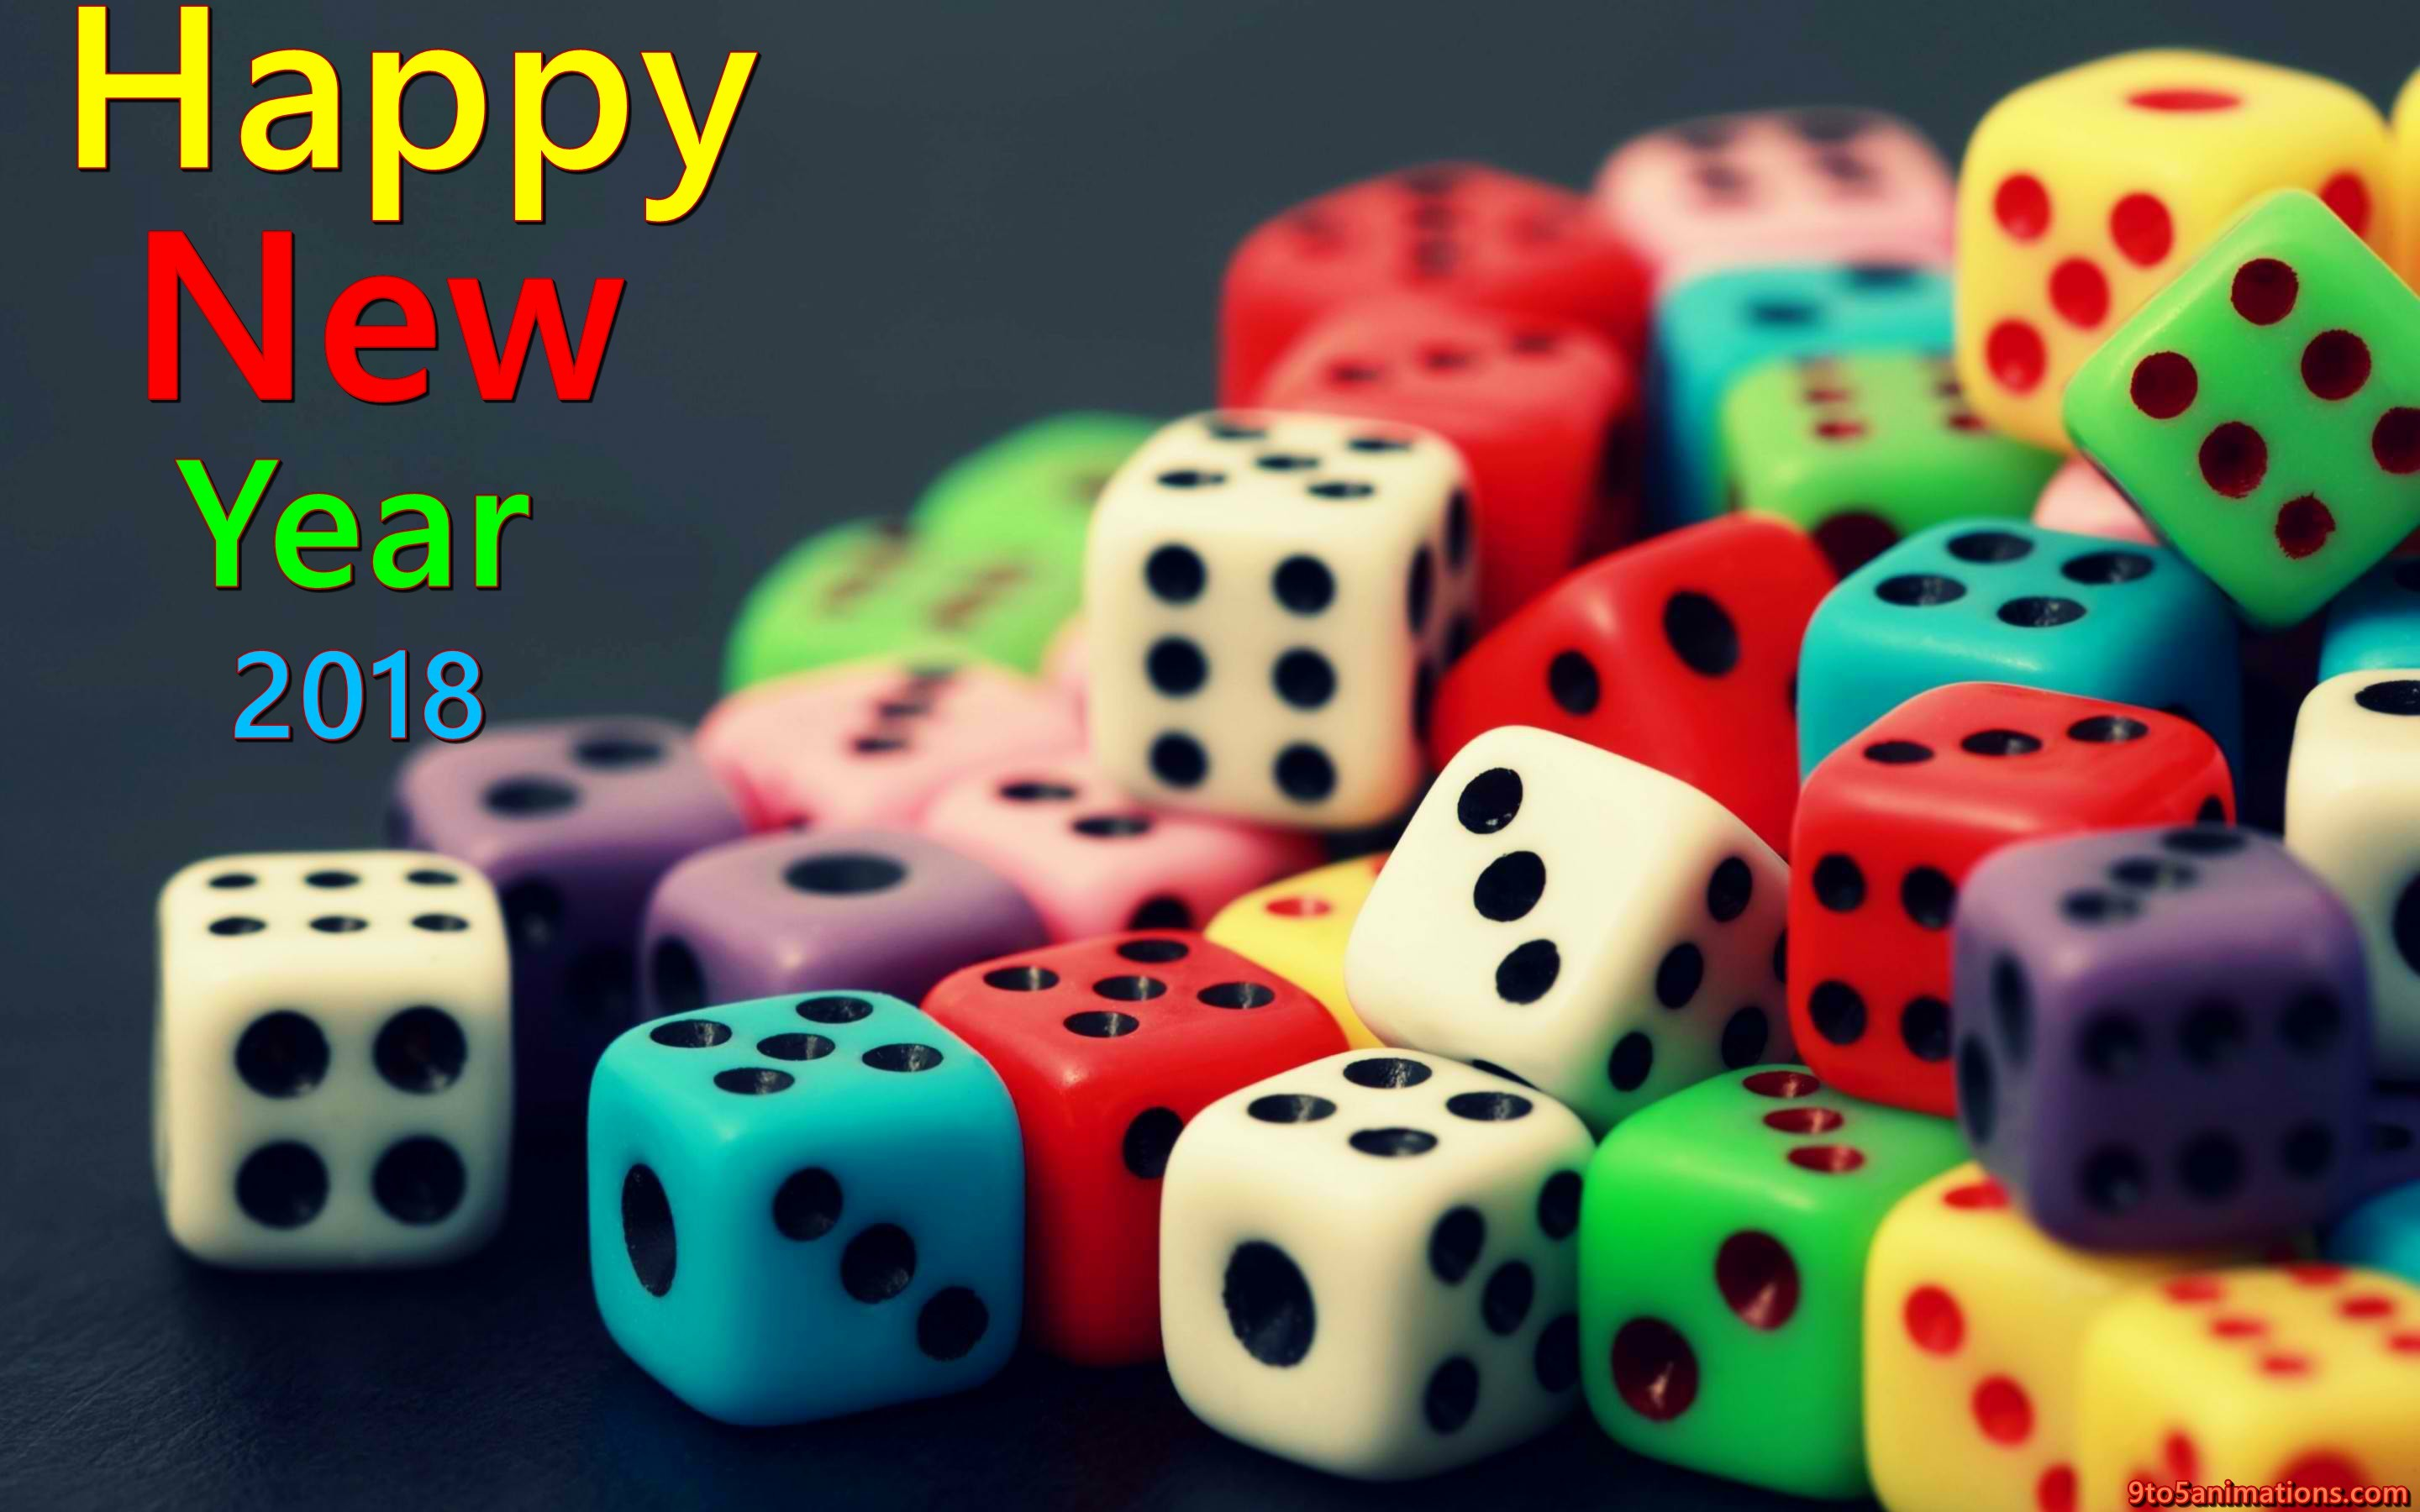 1920x1080 happy new year wishes with blue backgrounds hd wallpapers free download